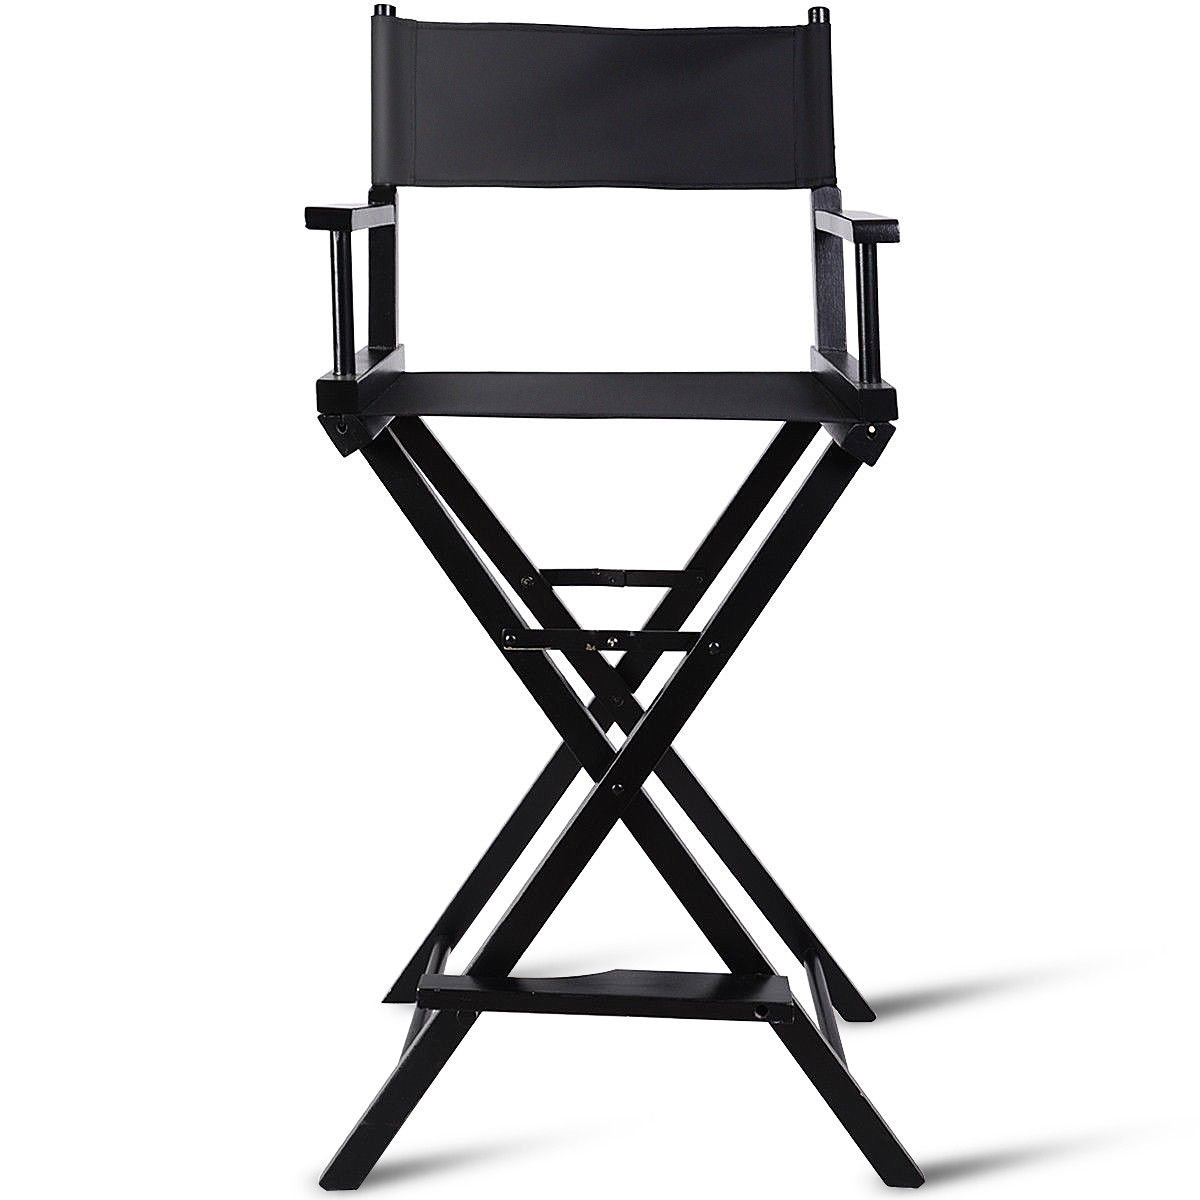 Professional Makeup Artist Foldable Chair Makeup Artist Chair Foldable Chairs Makeup Chair